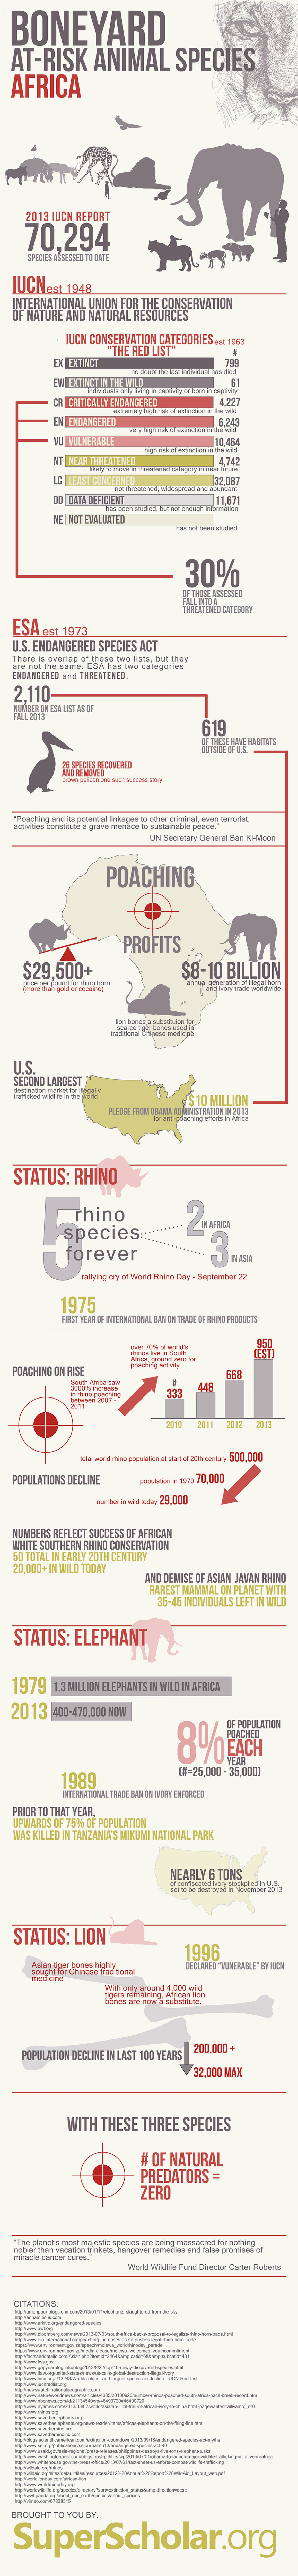 The Endangered Species in Africa Infographic